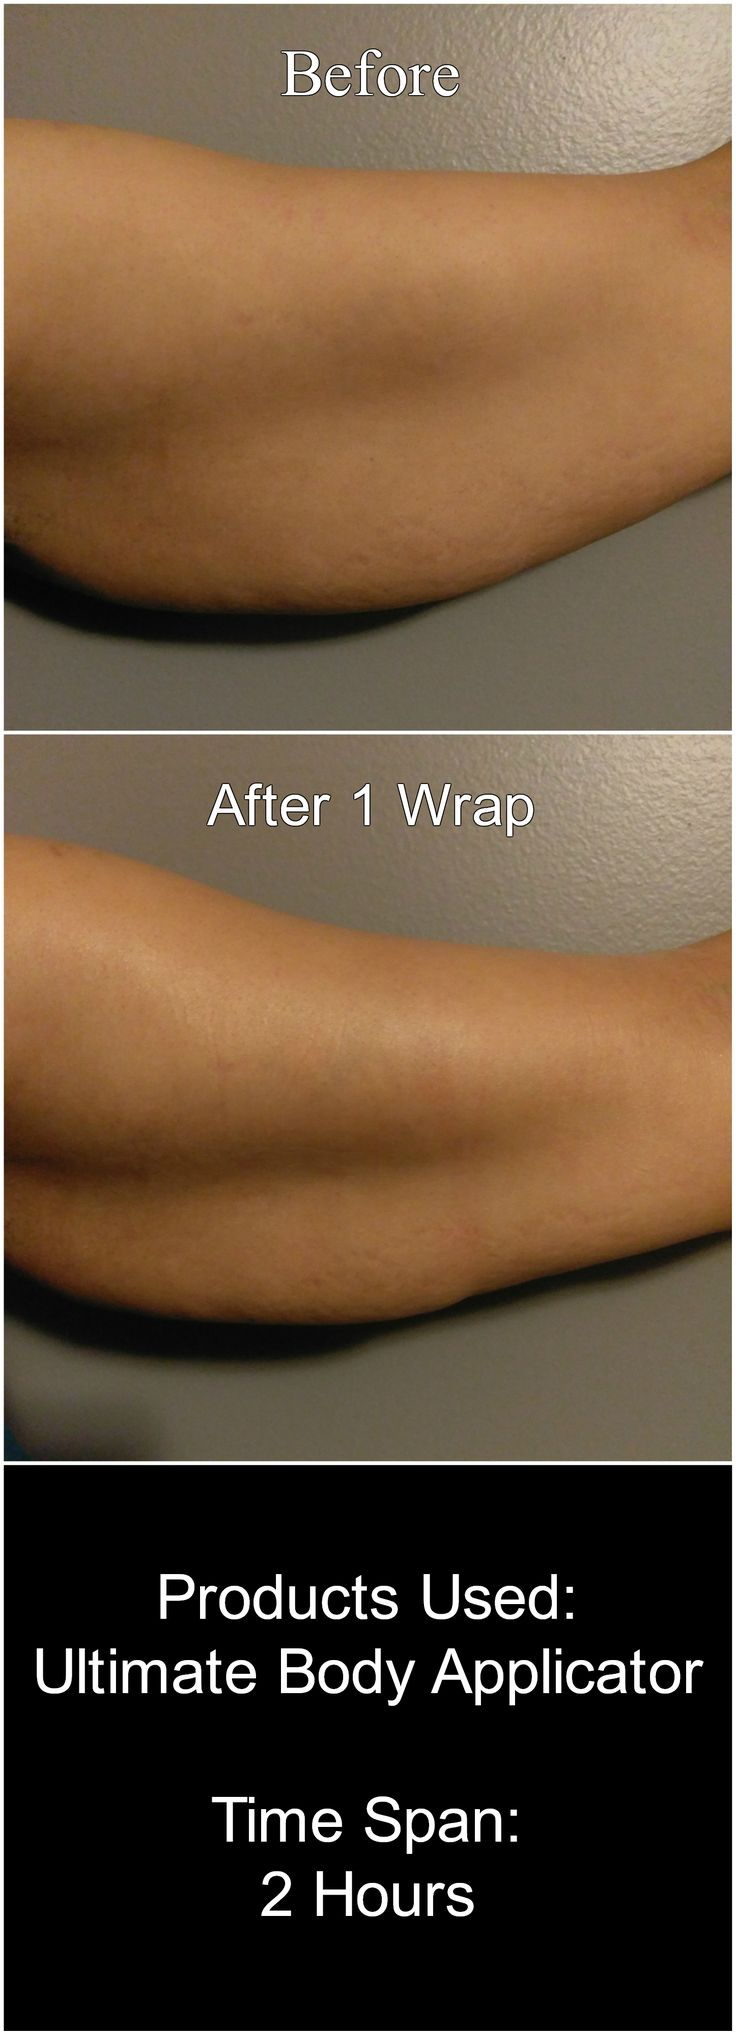 A happy customer makes a happy me. This is the results of using 1 wrap of the Ultimate Body Applicator. Each pack comes with 4 wraps so image the results when she uses the full treatment!!! http://natalielima.itworks.com/shop/product/111 Contact me for more details: nl.natalielima@gmail.com